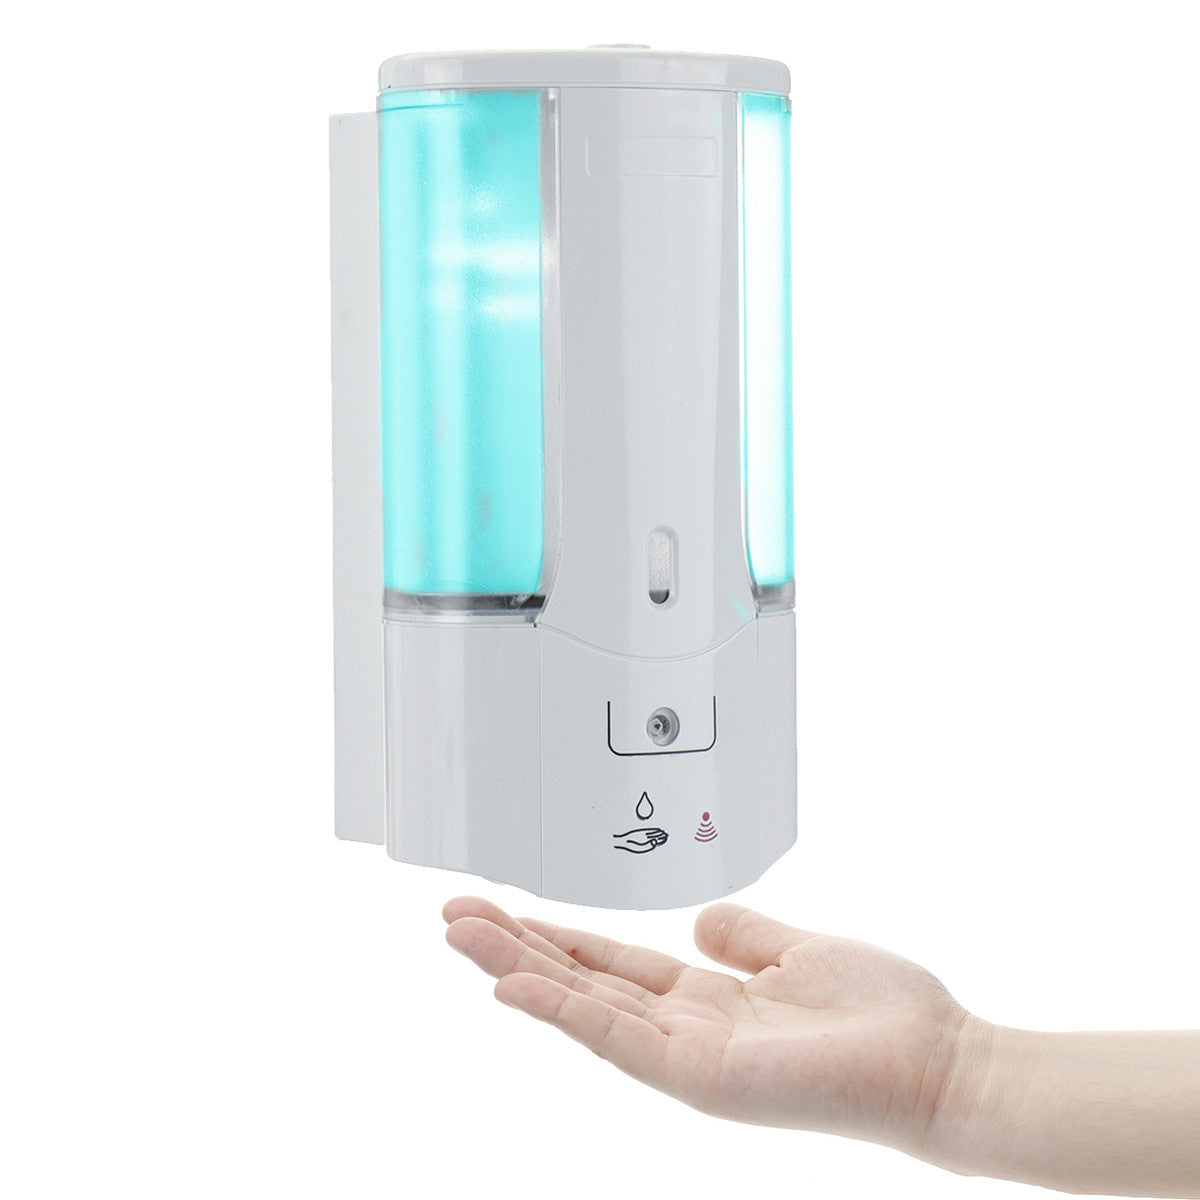 Bakeey Automatic Sensor Hand Free Soap Dispenser Shampoo Bathroom Wall Mounted